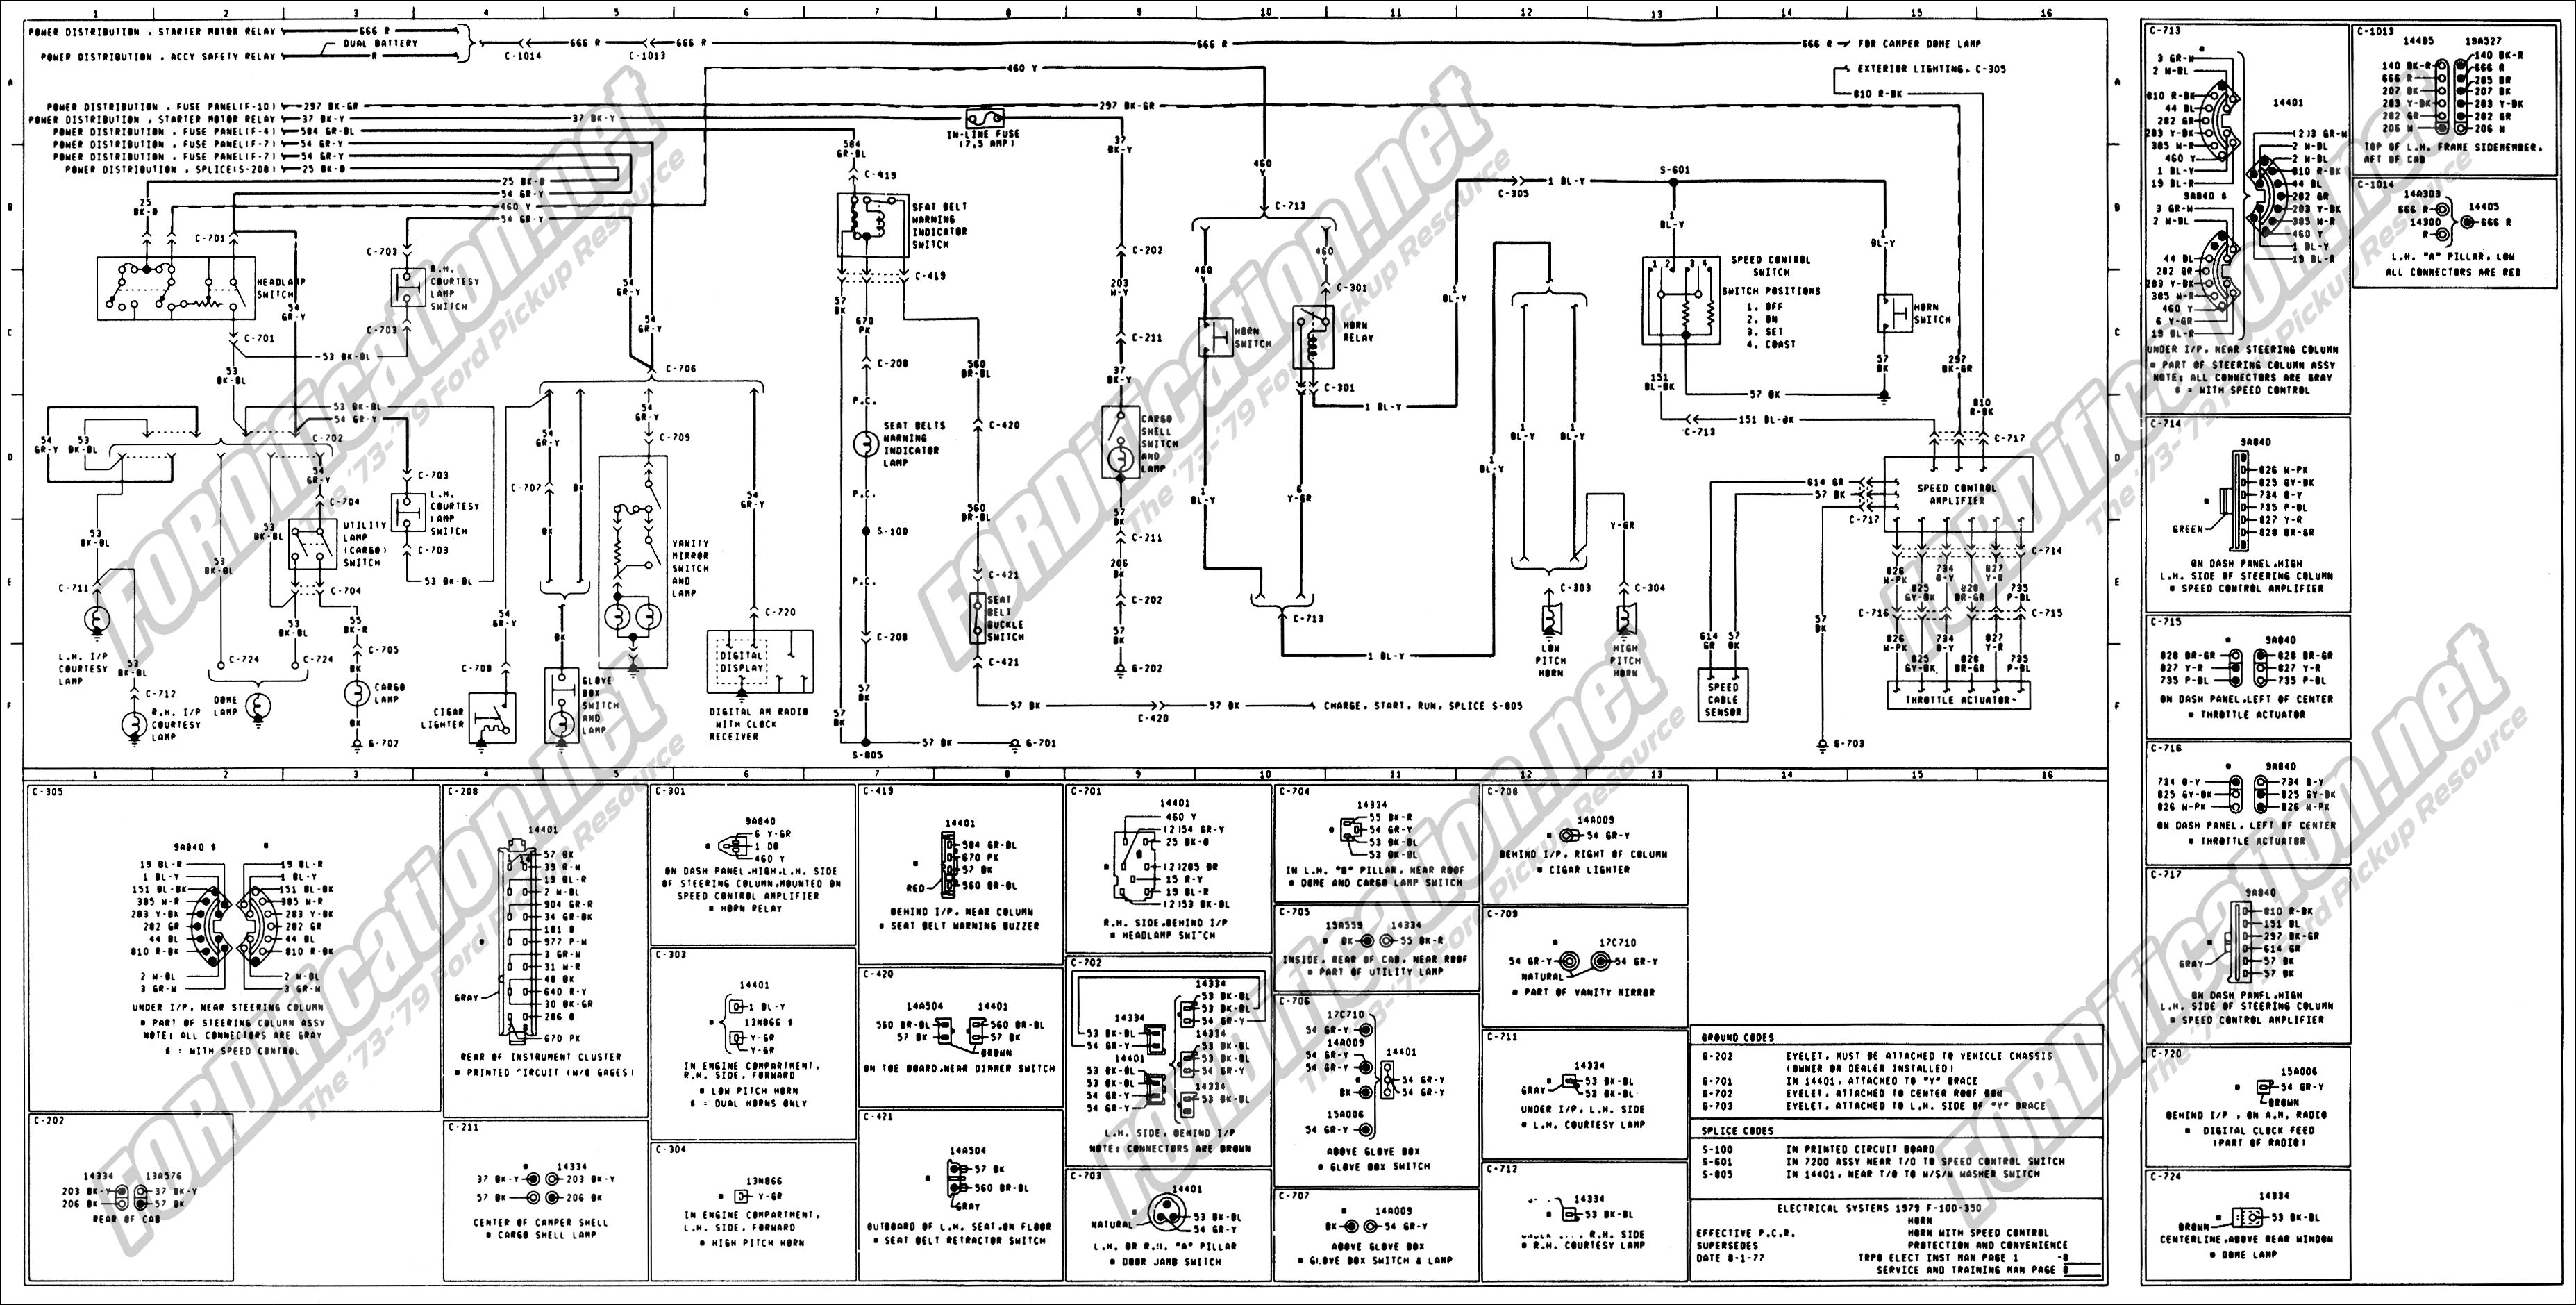 wiring_79master_8of9 1973 1979 ford truck wiring diagrams & schematics fordification net 1971 ford f250 wiring diagram at love-stories.co